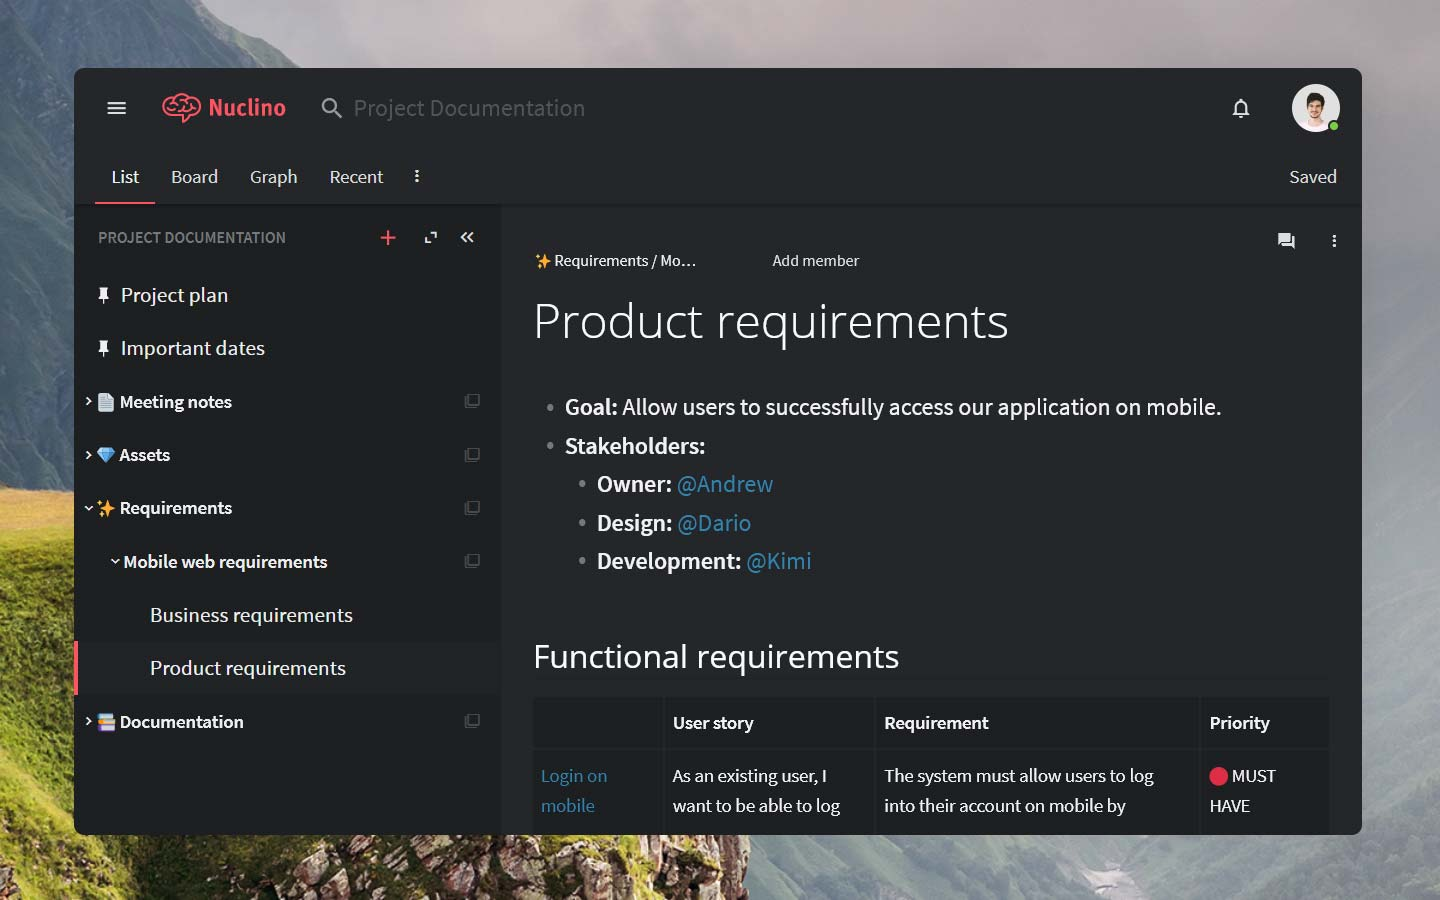 Functional requirements document in Nuclino